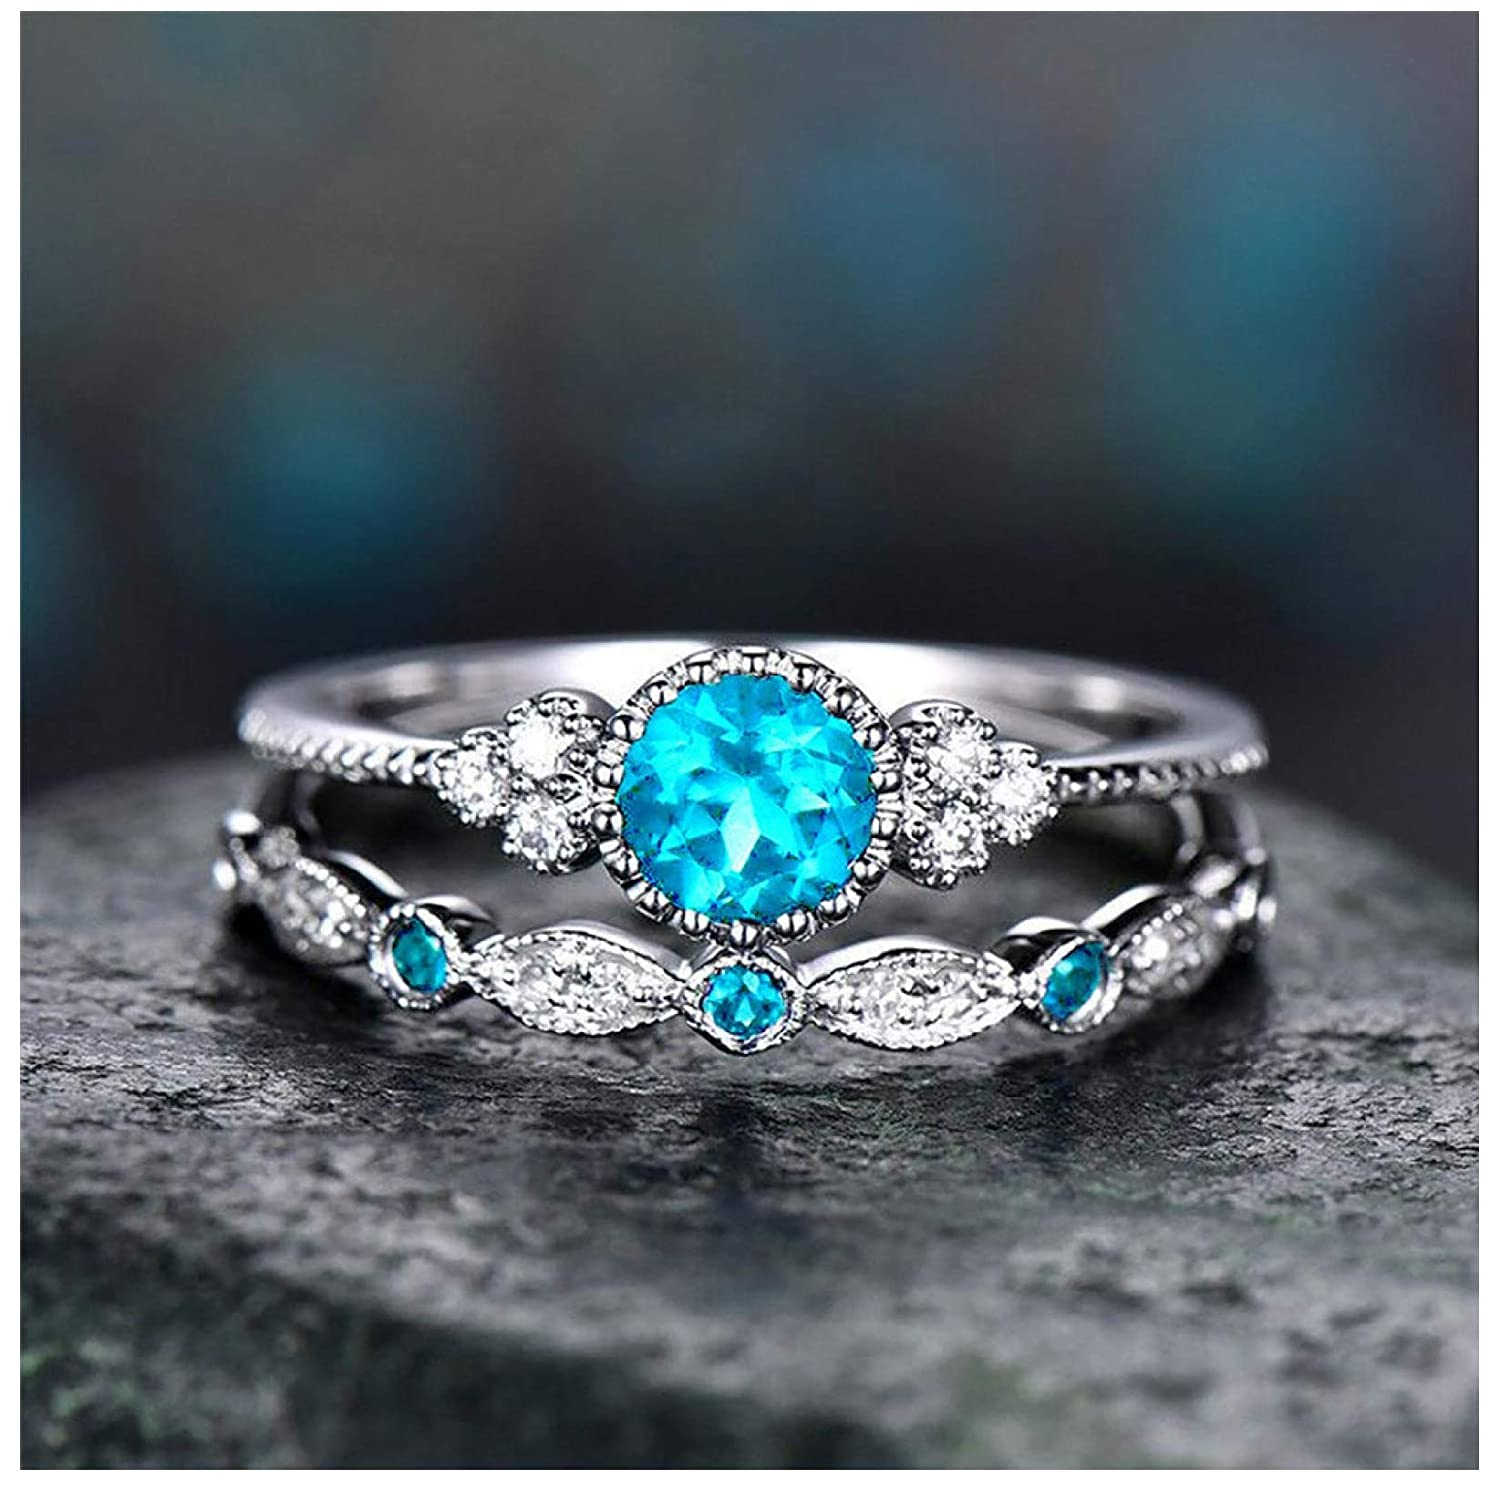 925 Sterling Silver Zircon Stone Ring,Personalized Shiny Full Diamond Women Wedding Engagement Bridal Band Ring, Mother's Day Gift, Couple Ring Jewelry Size 5-12 (6, 004: Couple Ring - Sky Blue 2PC)